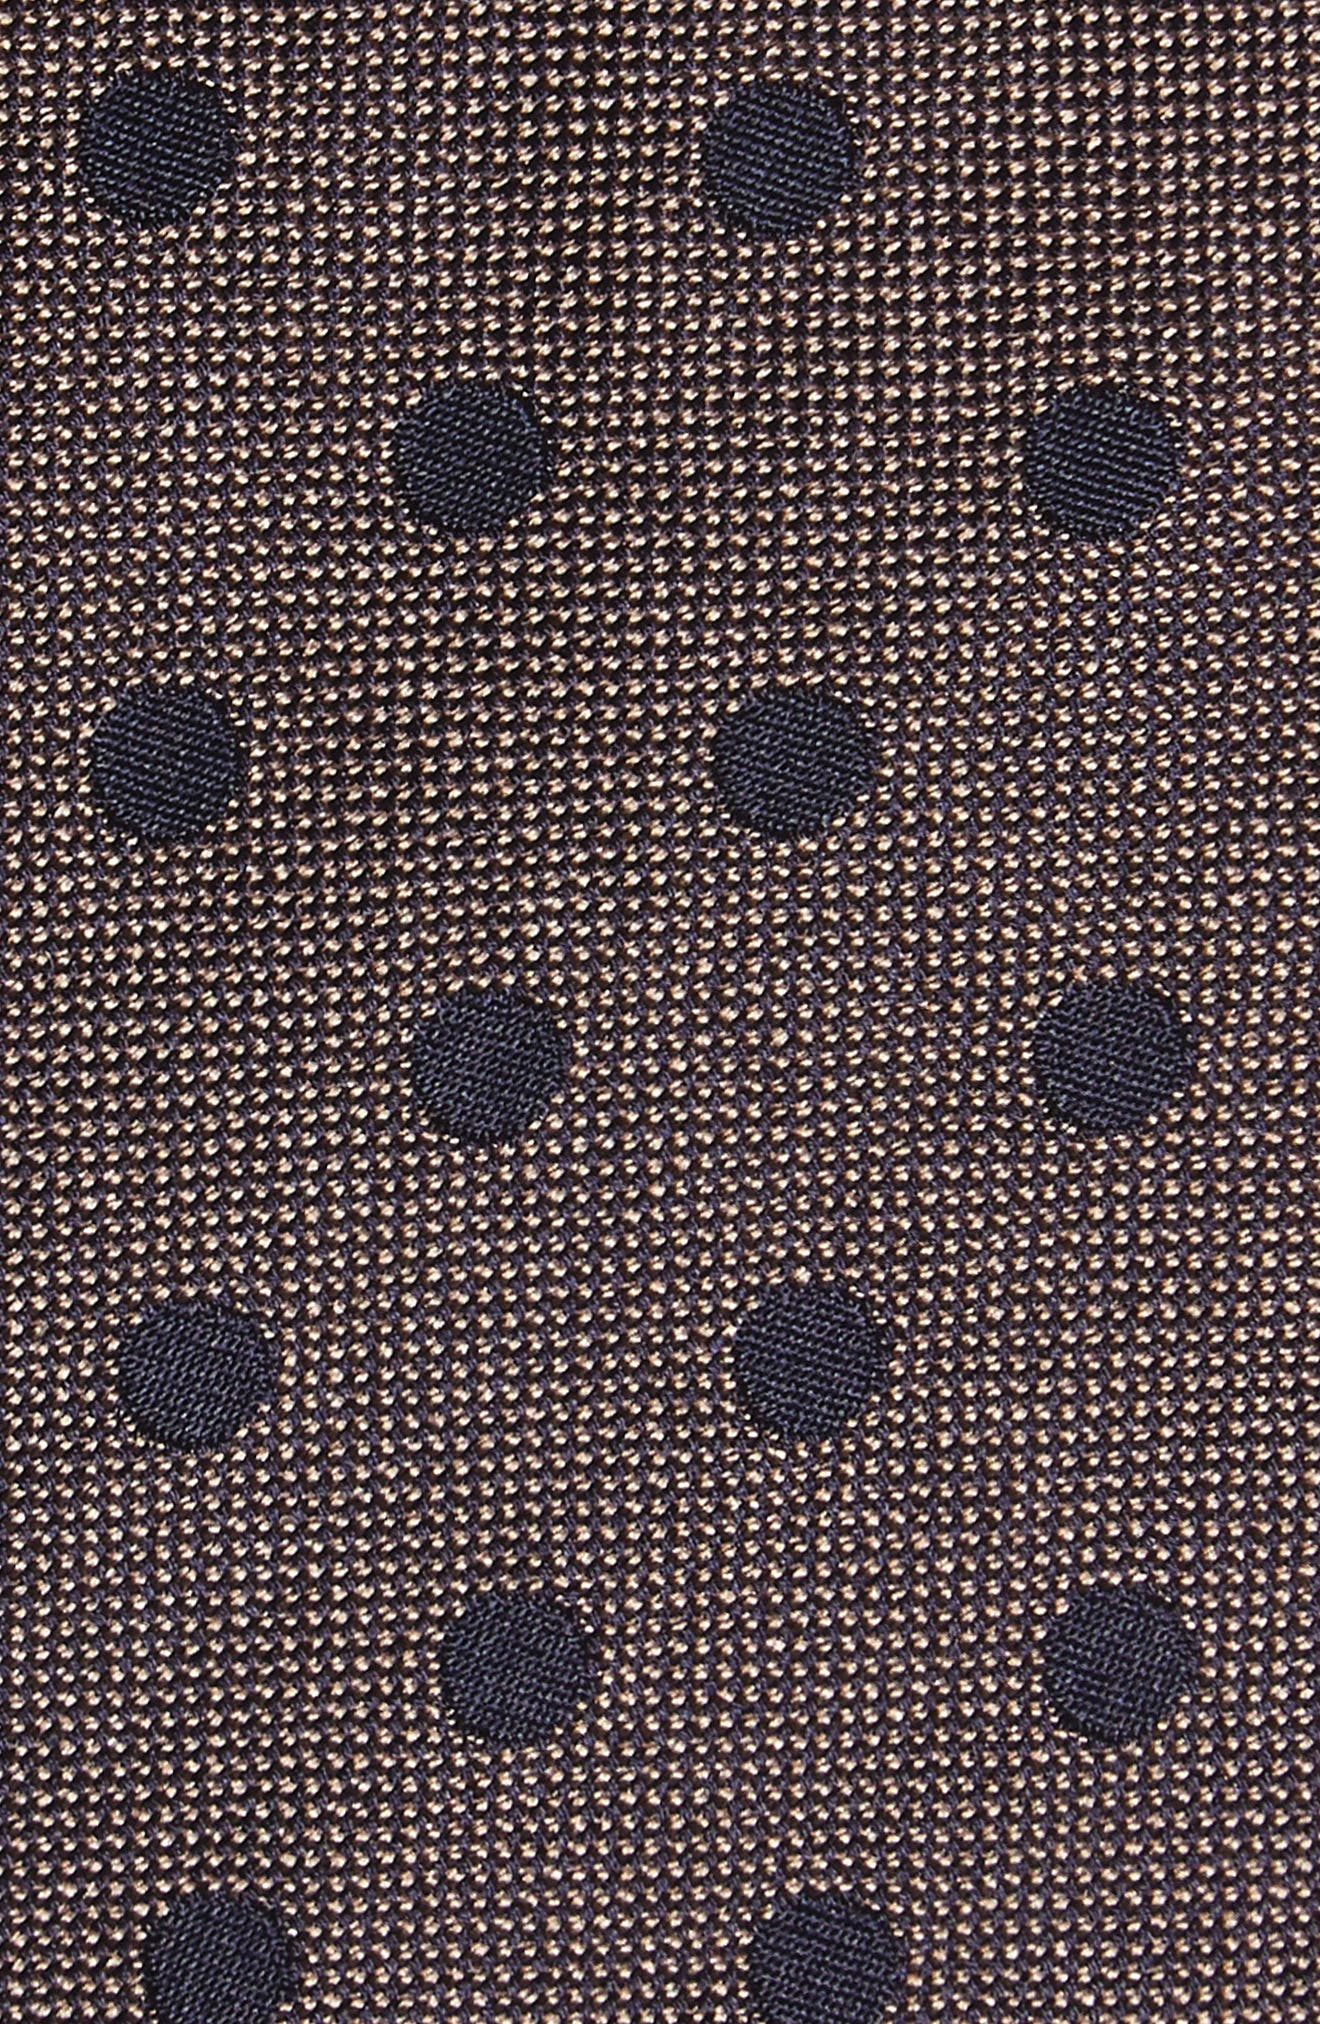 Dot Silk Tie,                             Alternate thumbnail 2, color,                             Taupe